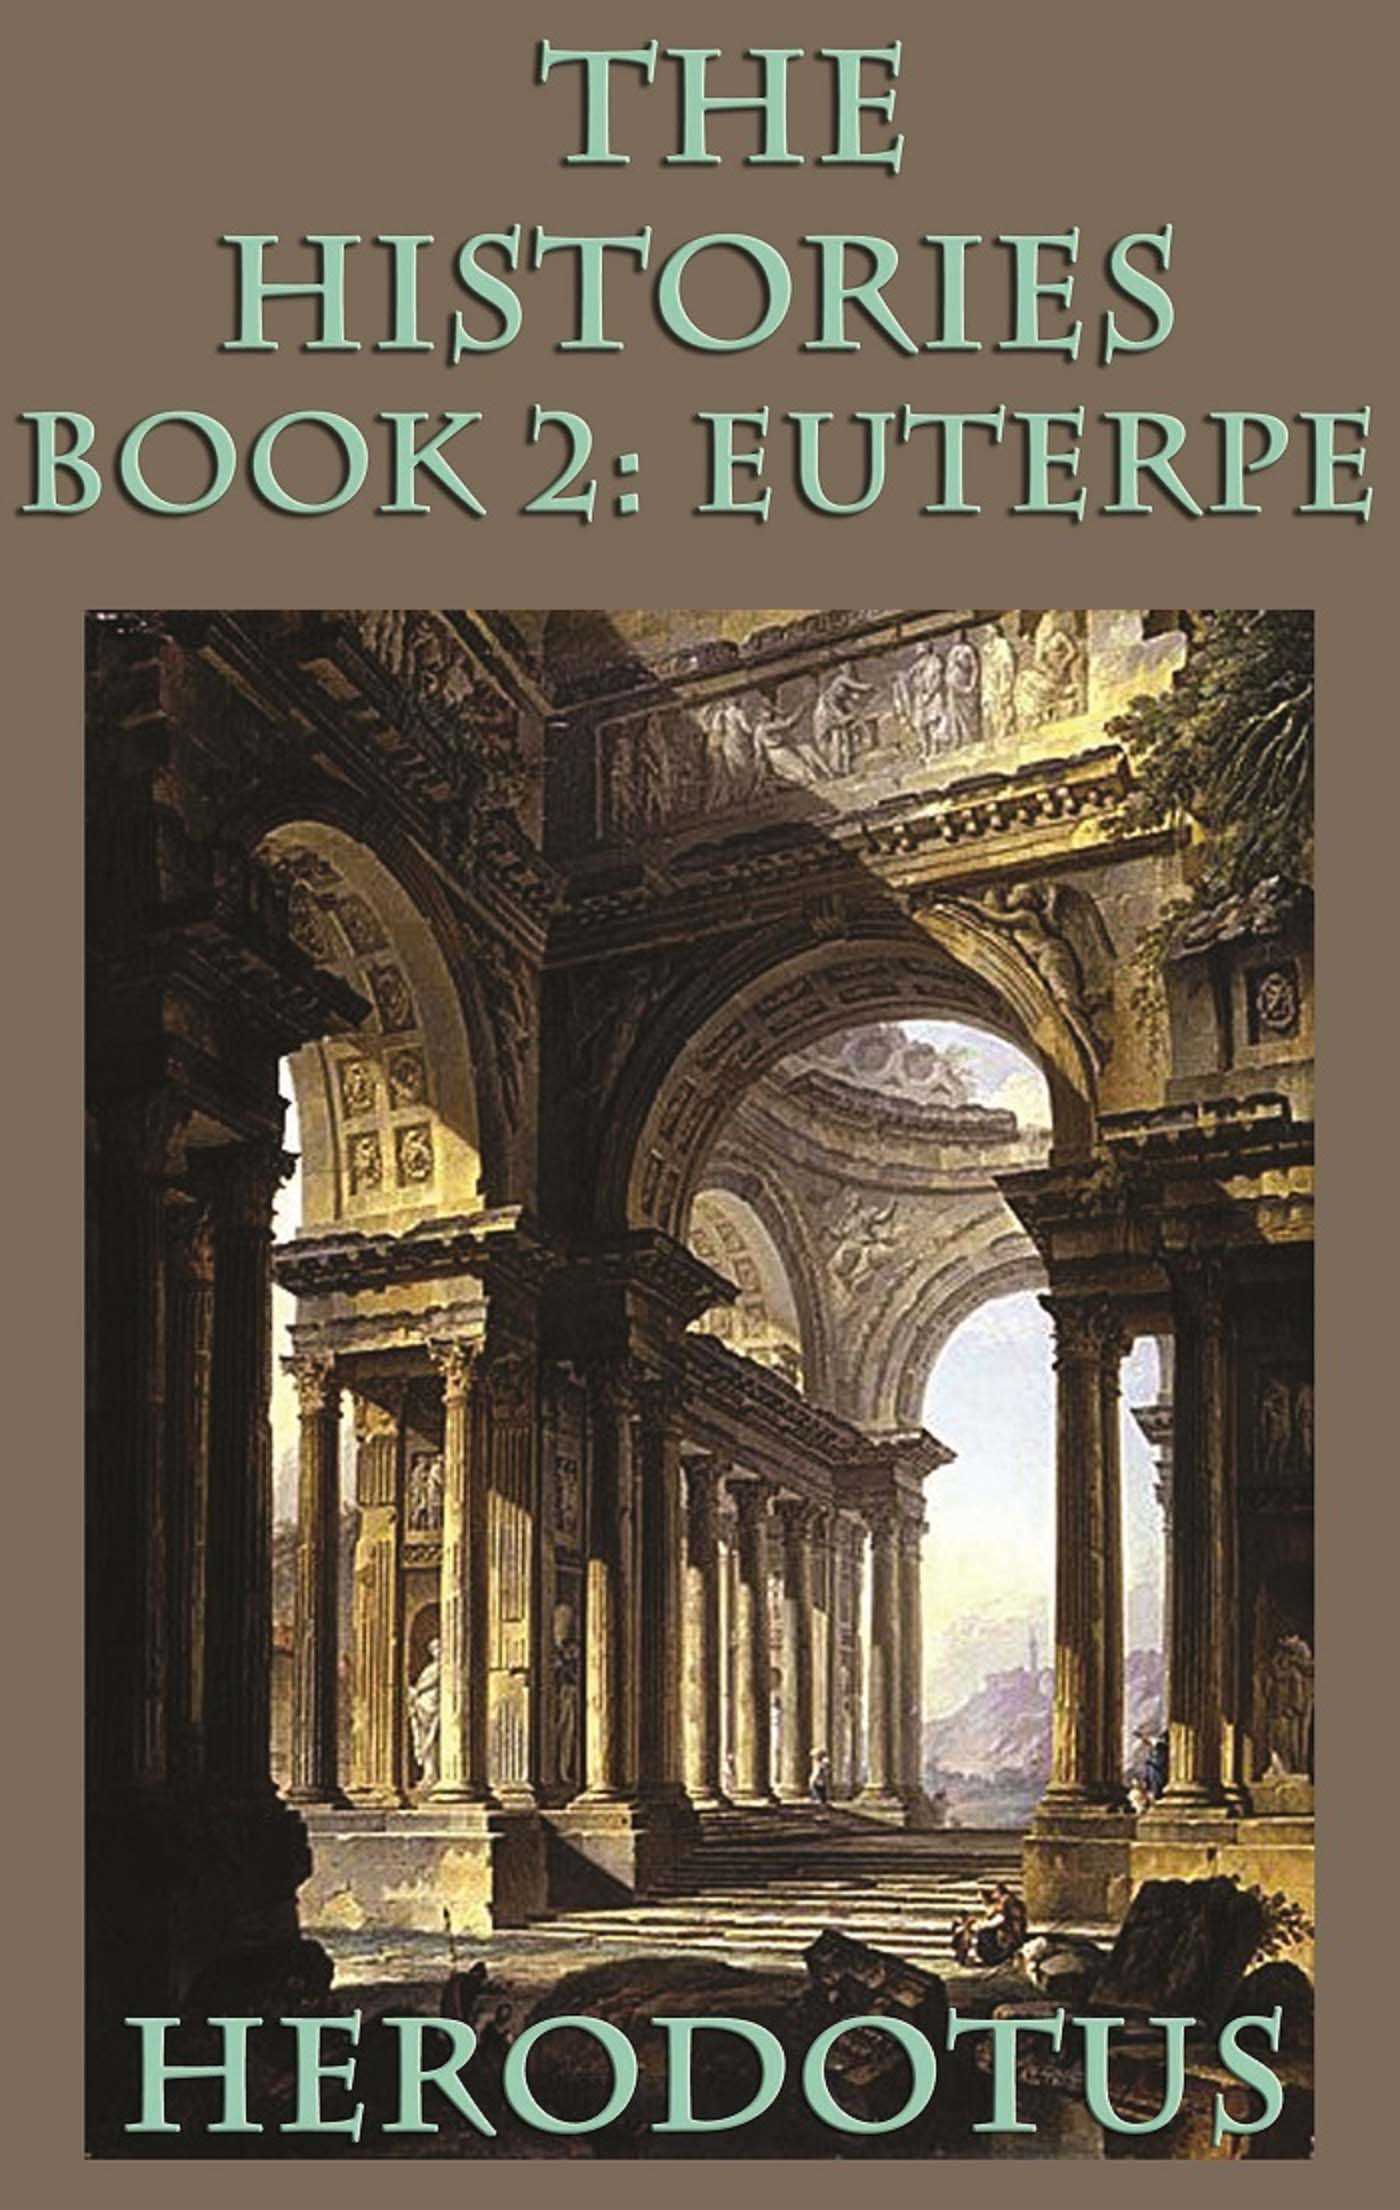 The histories book 2 euterpe 9781681462912 hr